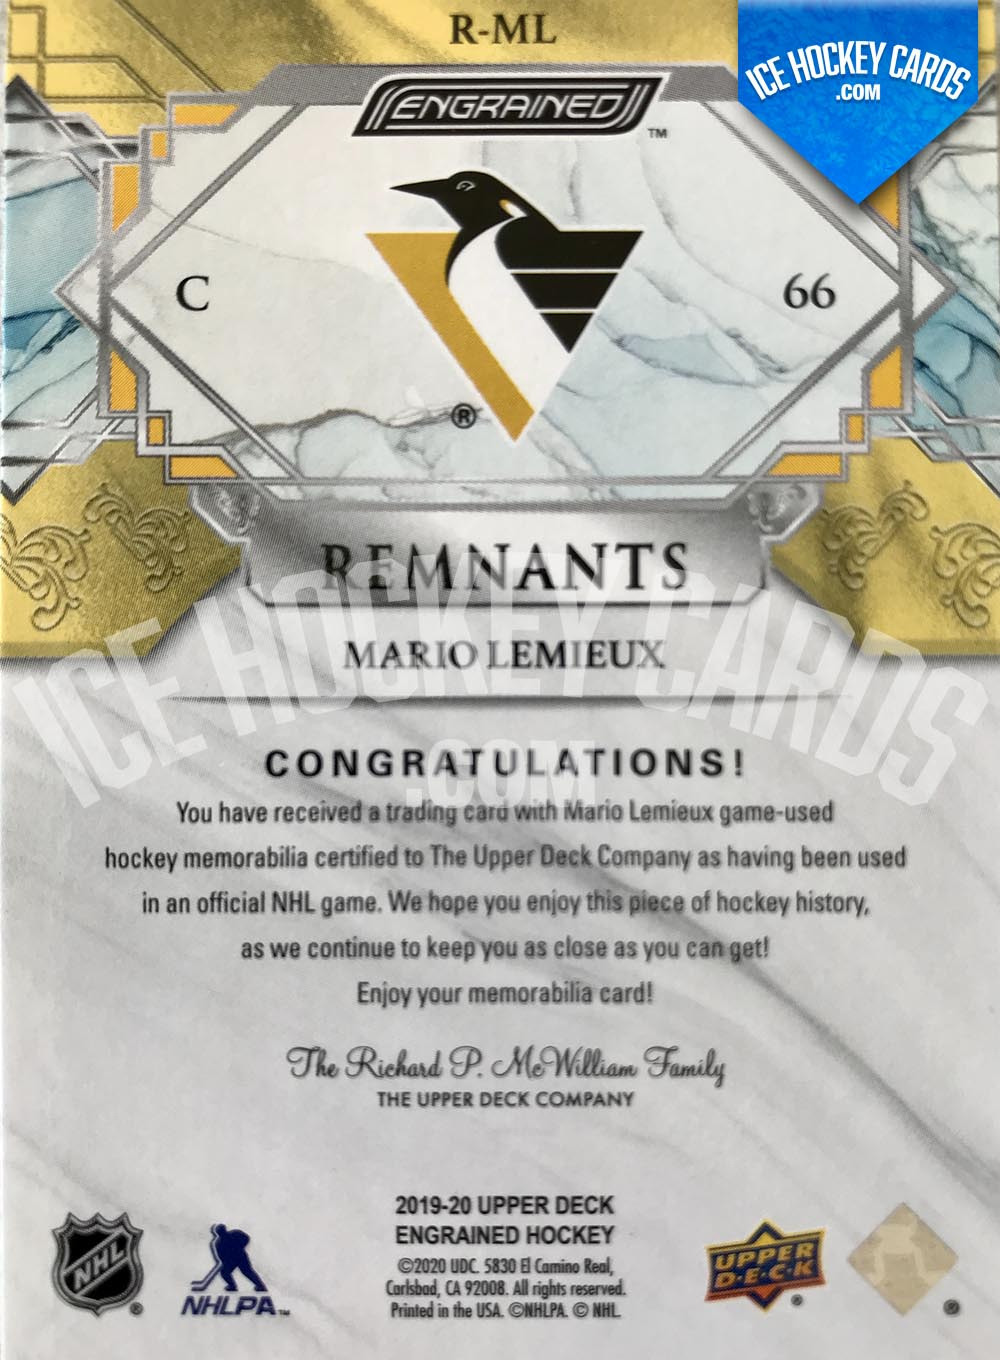 Upper Deck - Engrained 2019-20 - Mario Lemieux Remnants Sticks Game-Used # to 100 back